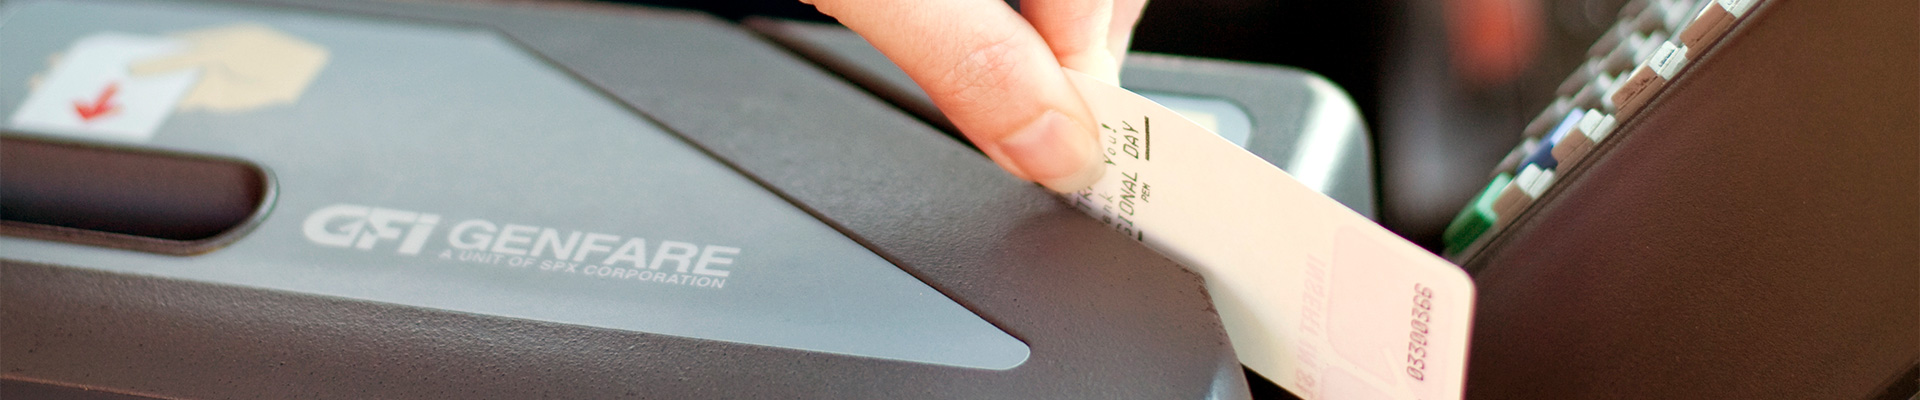 Hand swiping bus pass through onboard bus fare box